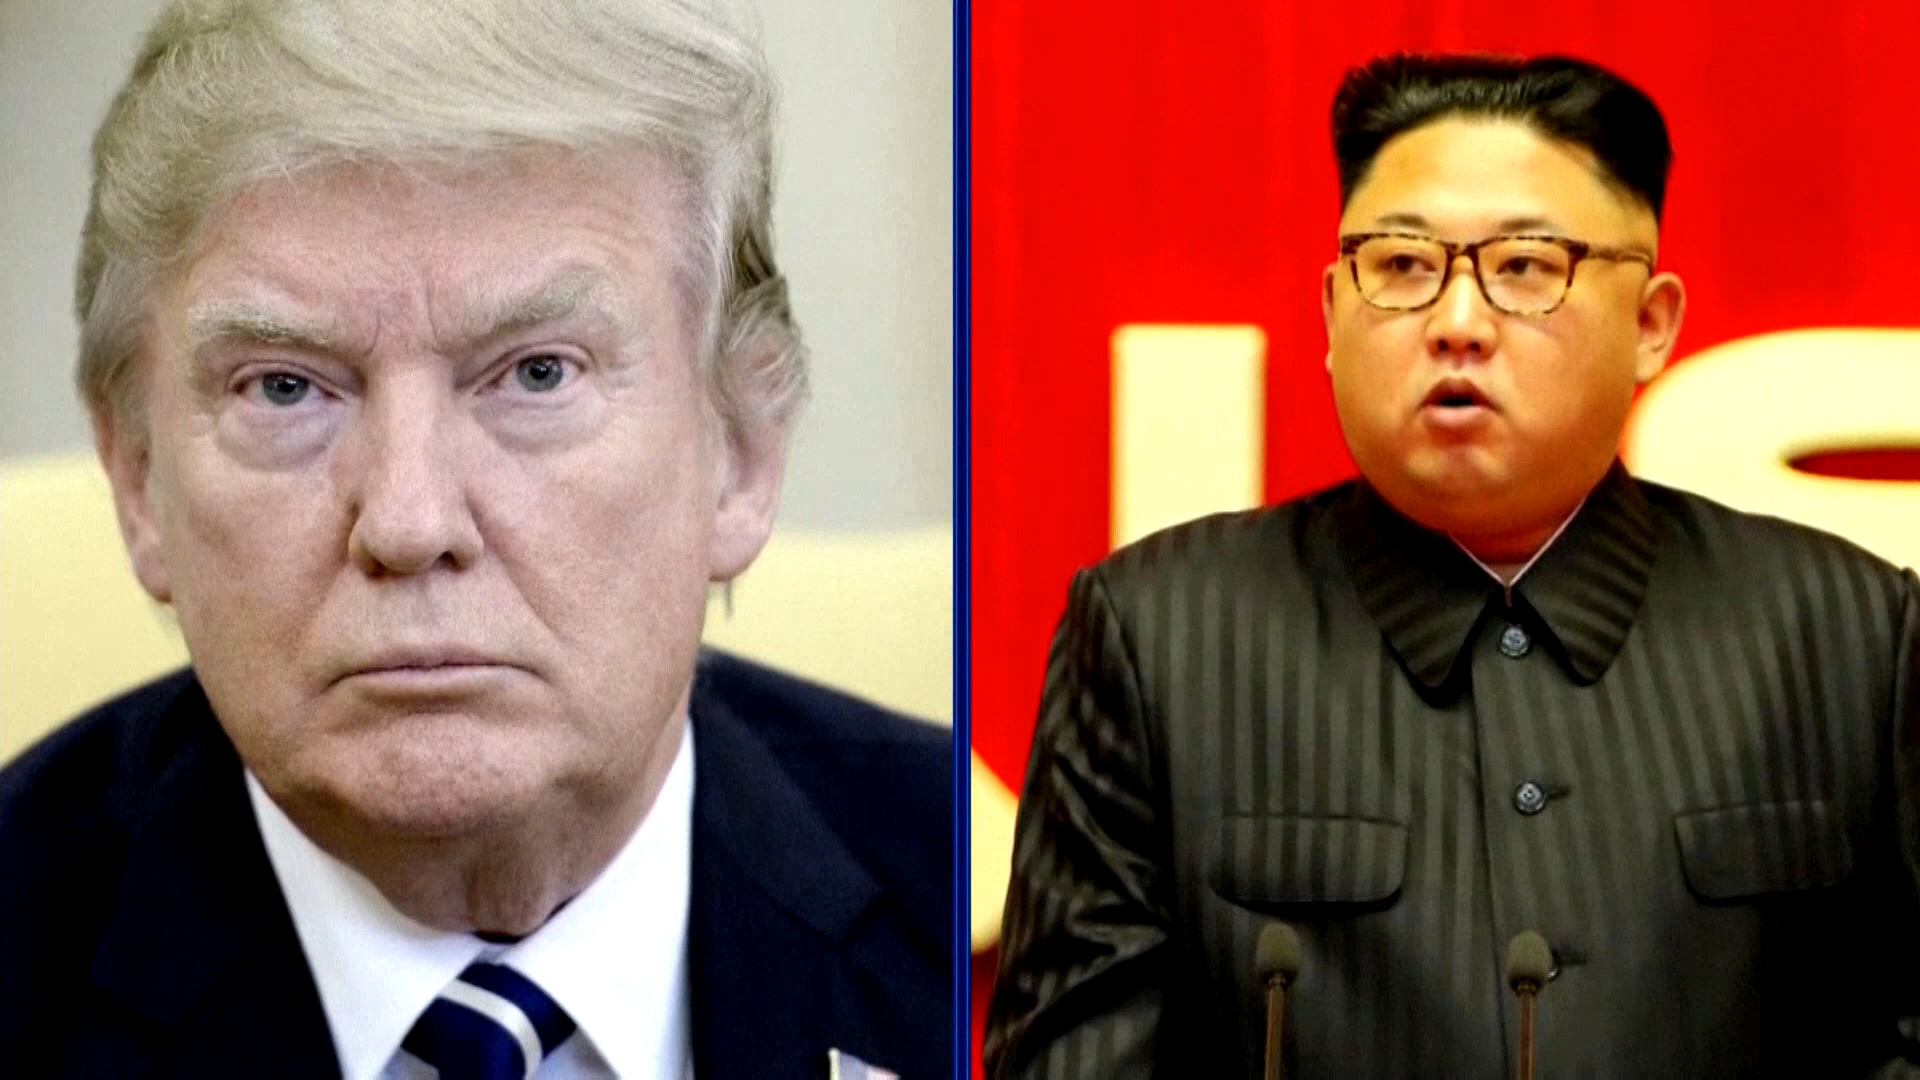 USA seeks 'concrete actions' from North Korea before planned talks